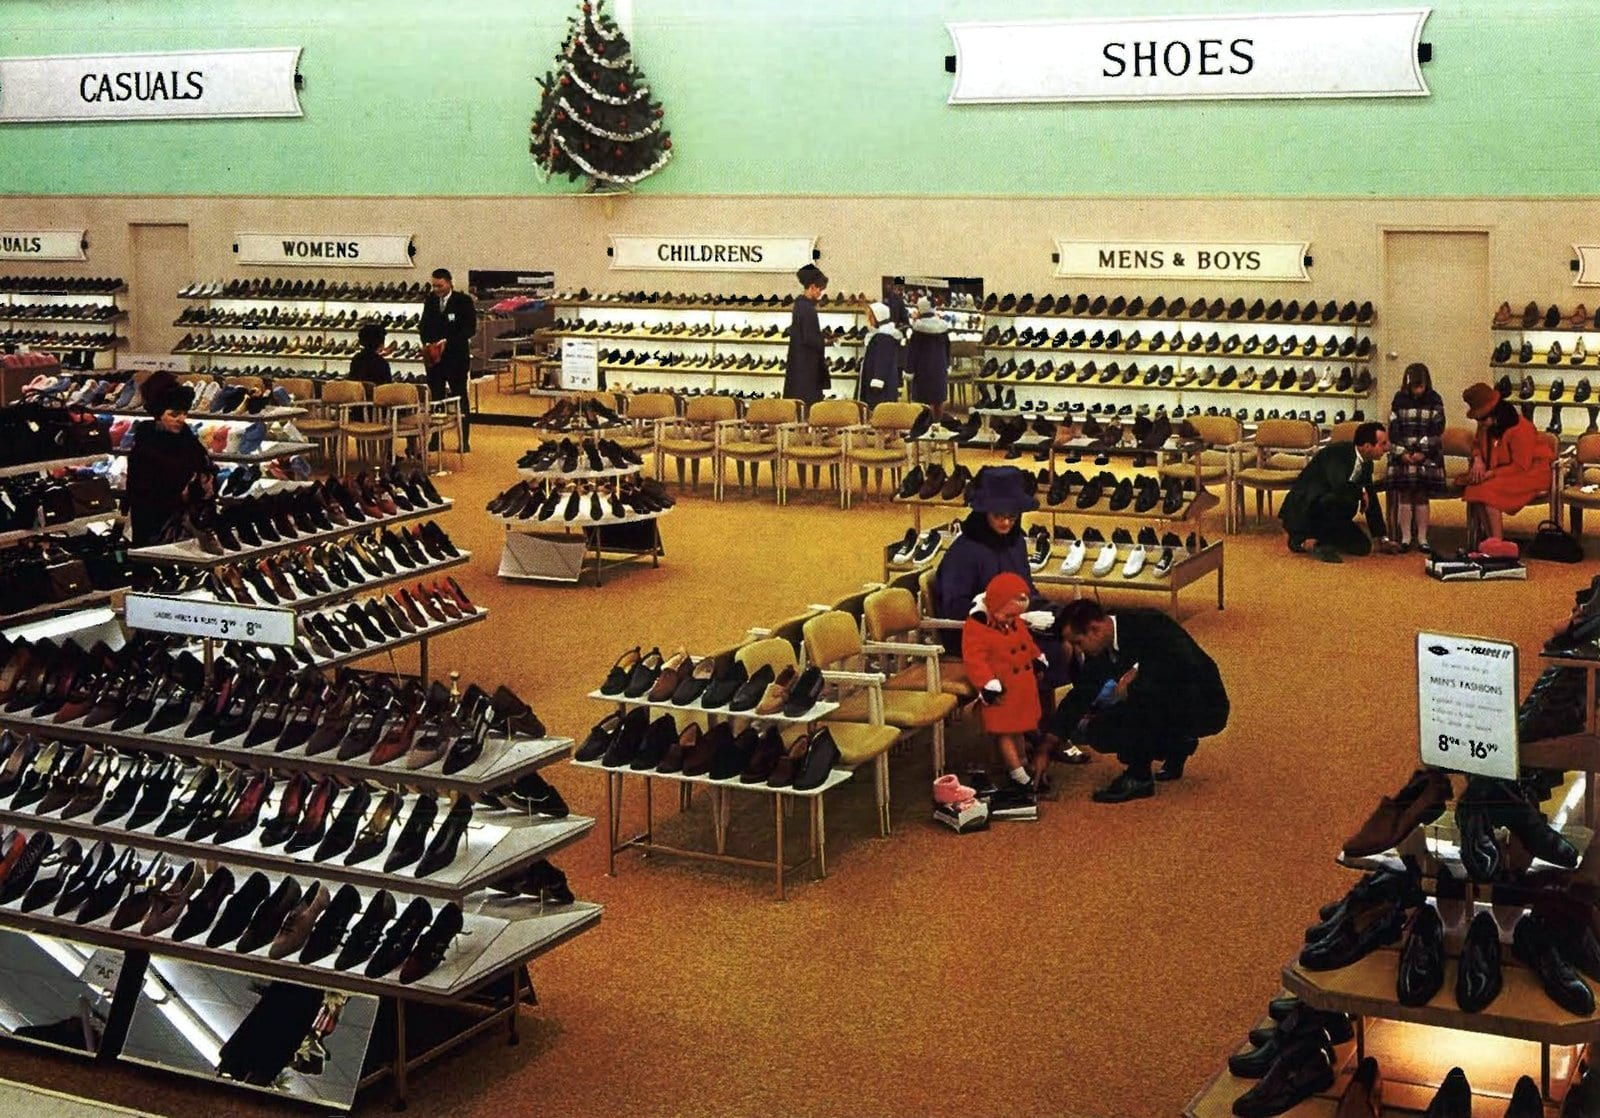 Fully-stocked vintage shoe store (1966)